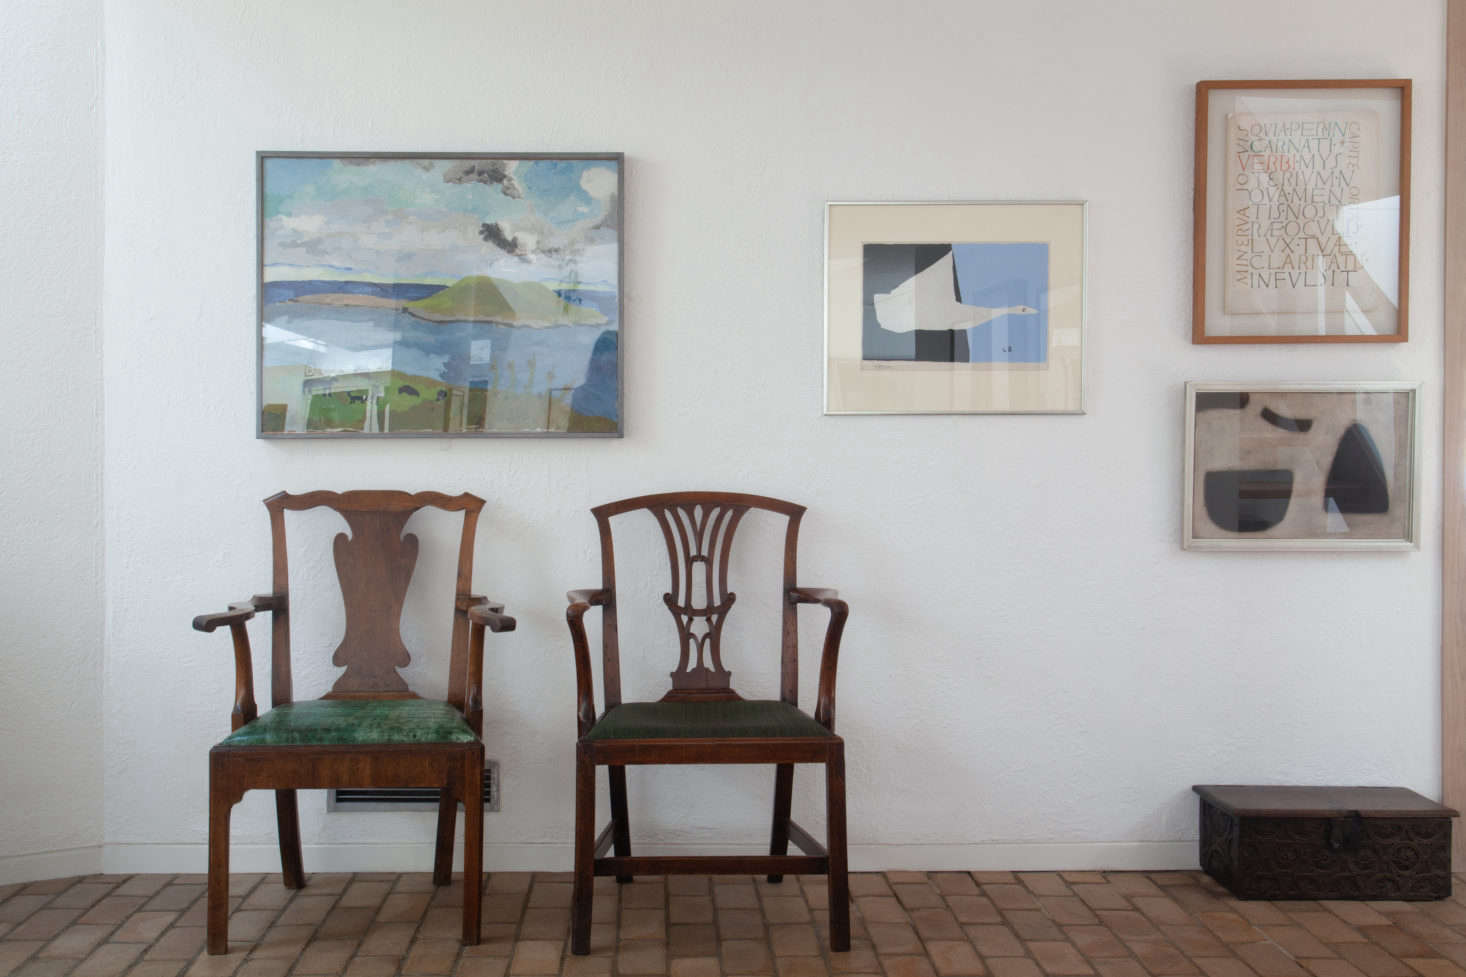 A pair of mismatched armchairs, both with green upholstered seats, are positioned in the gallery extension for guests to view paintings on the opposite wall.